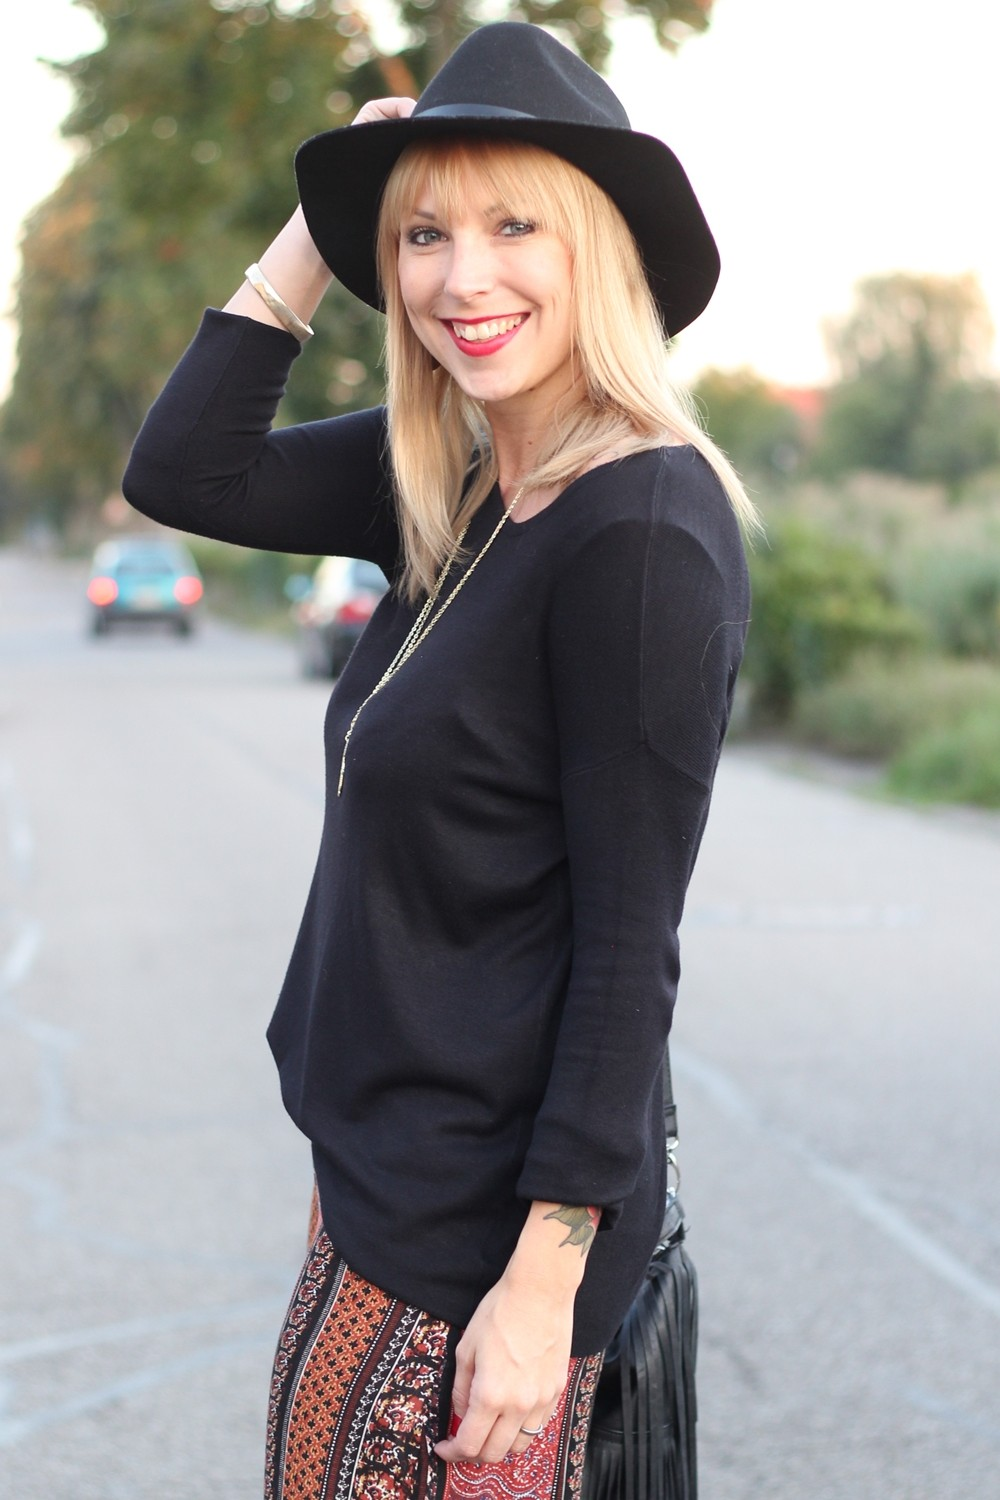 Fashinblogger Karlsruhe Mannheim Outfit Palazzohosen Pull and Bear Sweater Hut Fransentasche 9